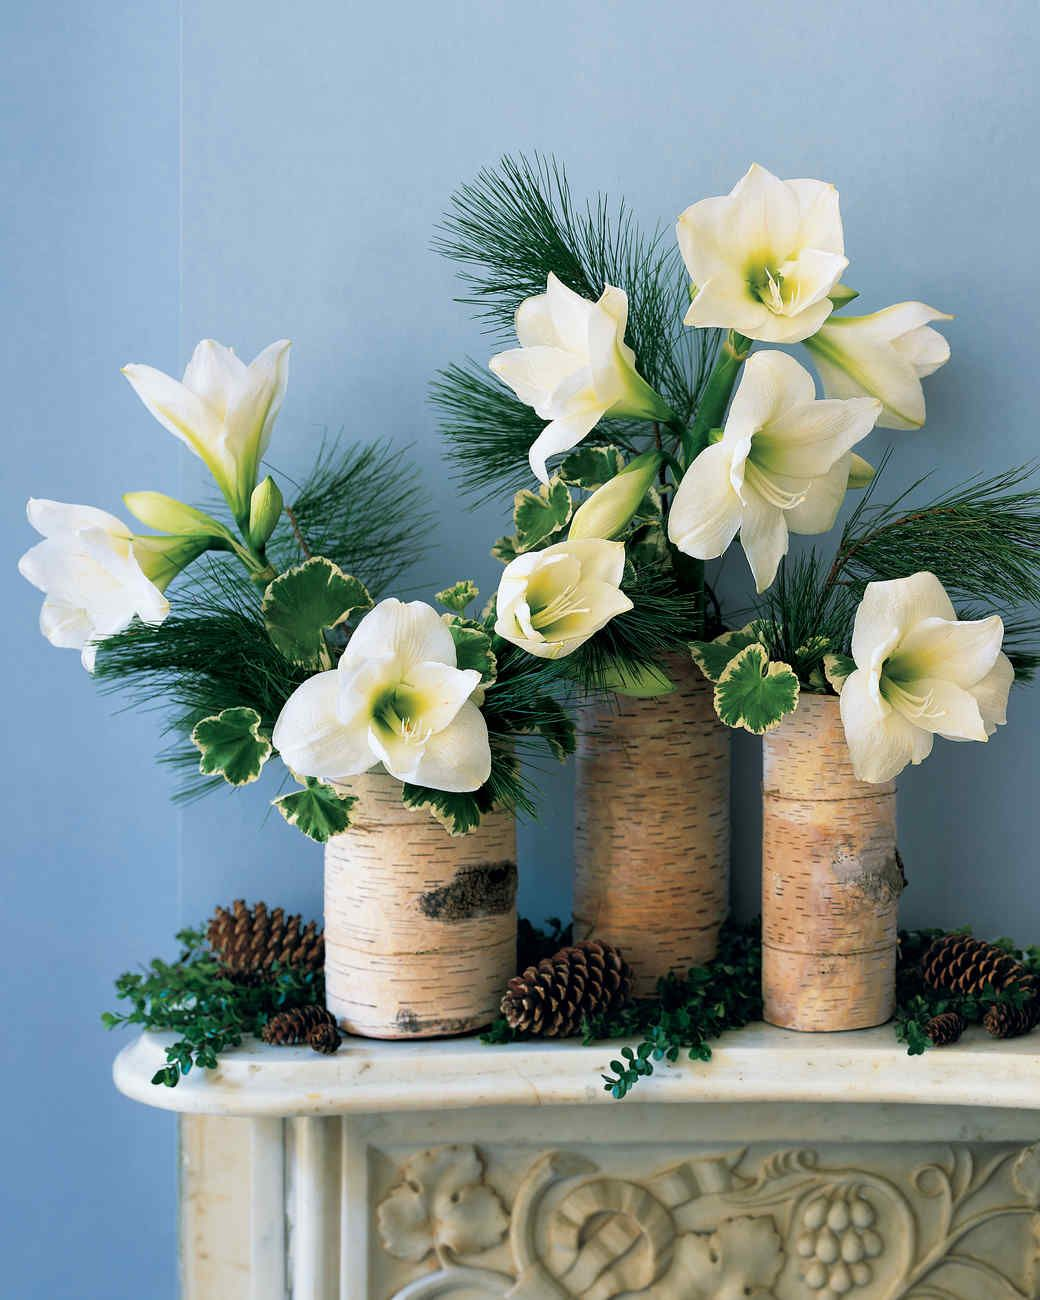 Birch Arrangement | Martha Stewart Living — Create a serene winter tableau with this simple arrangement: birch bark wrapped around glass cylinders filled with plants found easily at this time of year.